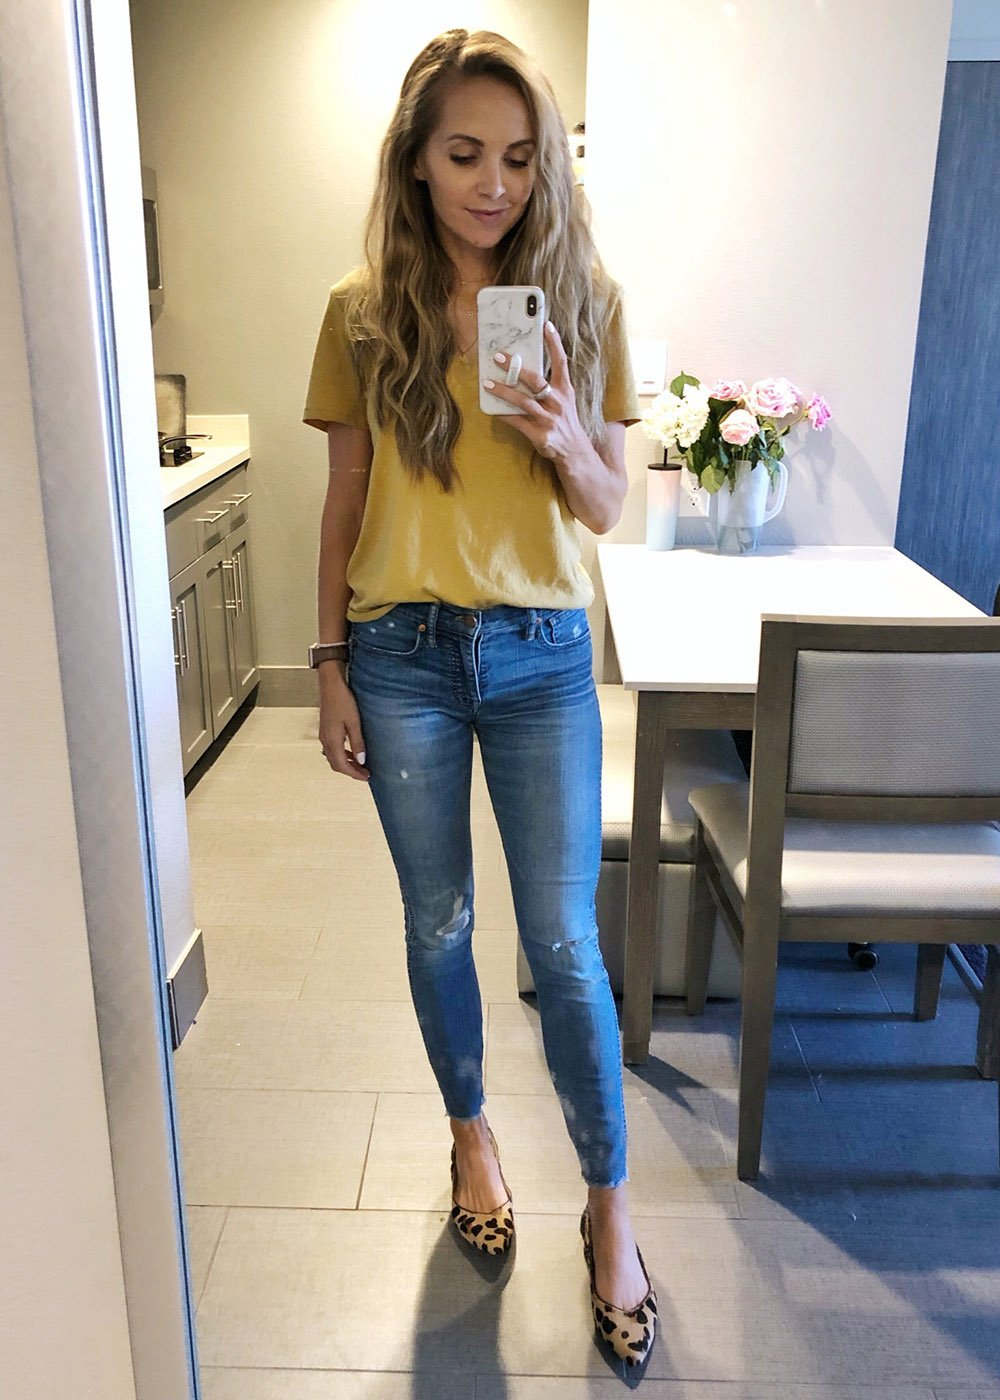 mustard vneck tee and jeans - instagram outfit